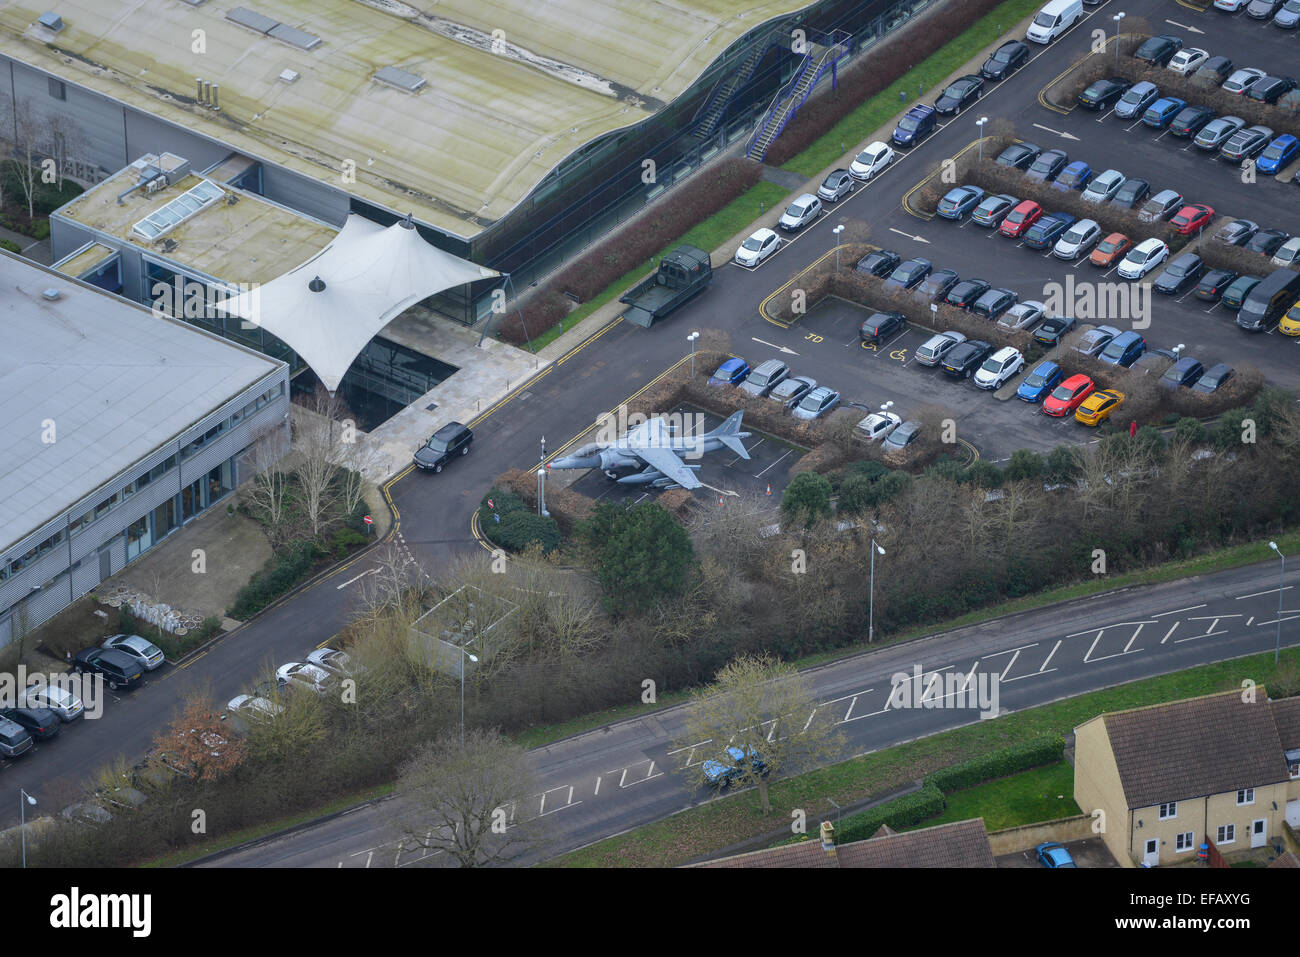 Aerial photograph of building entrance on Malmesbury Industrial Park, Buettell Way - Stock Image